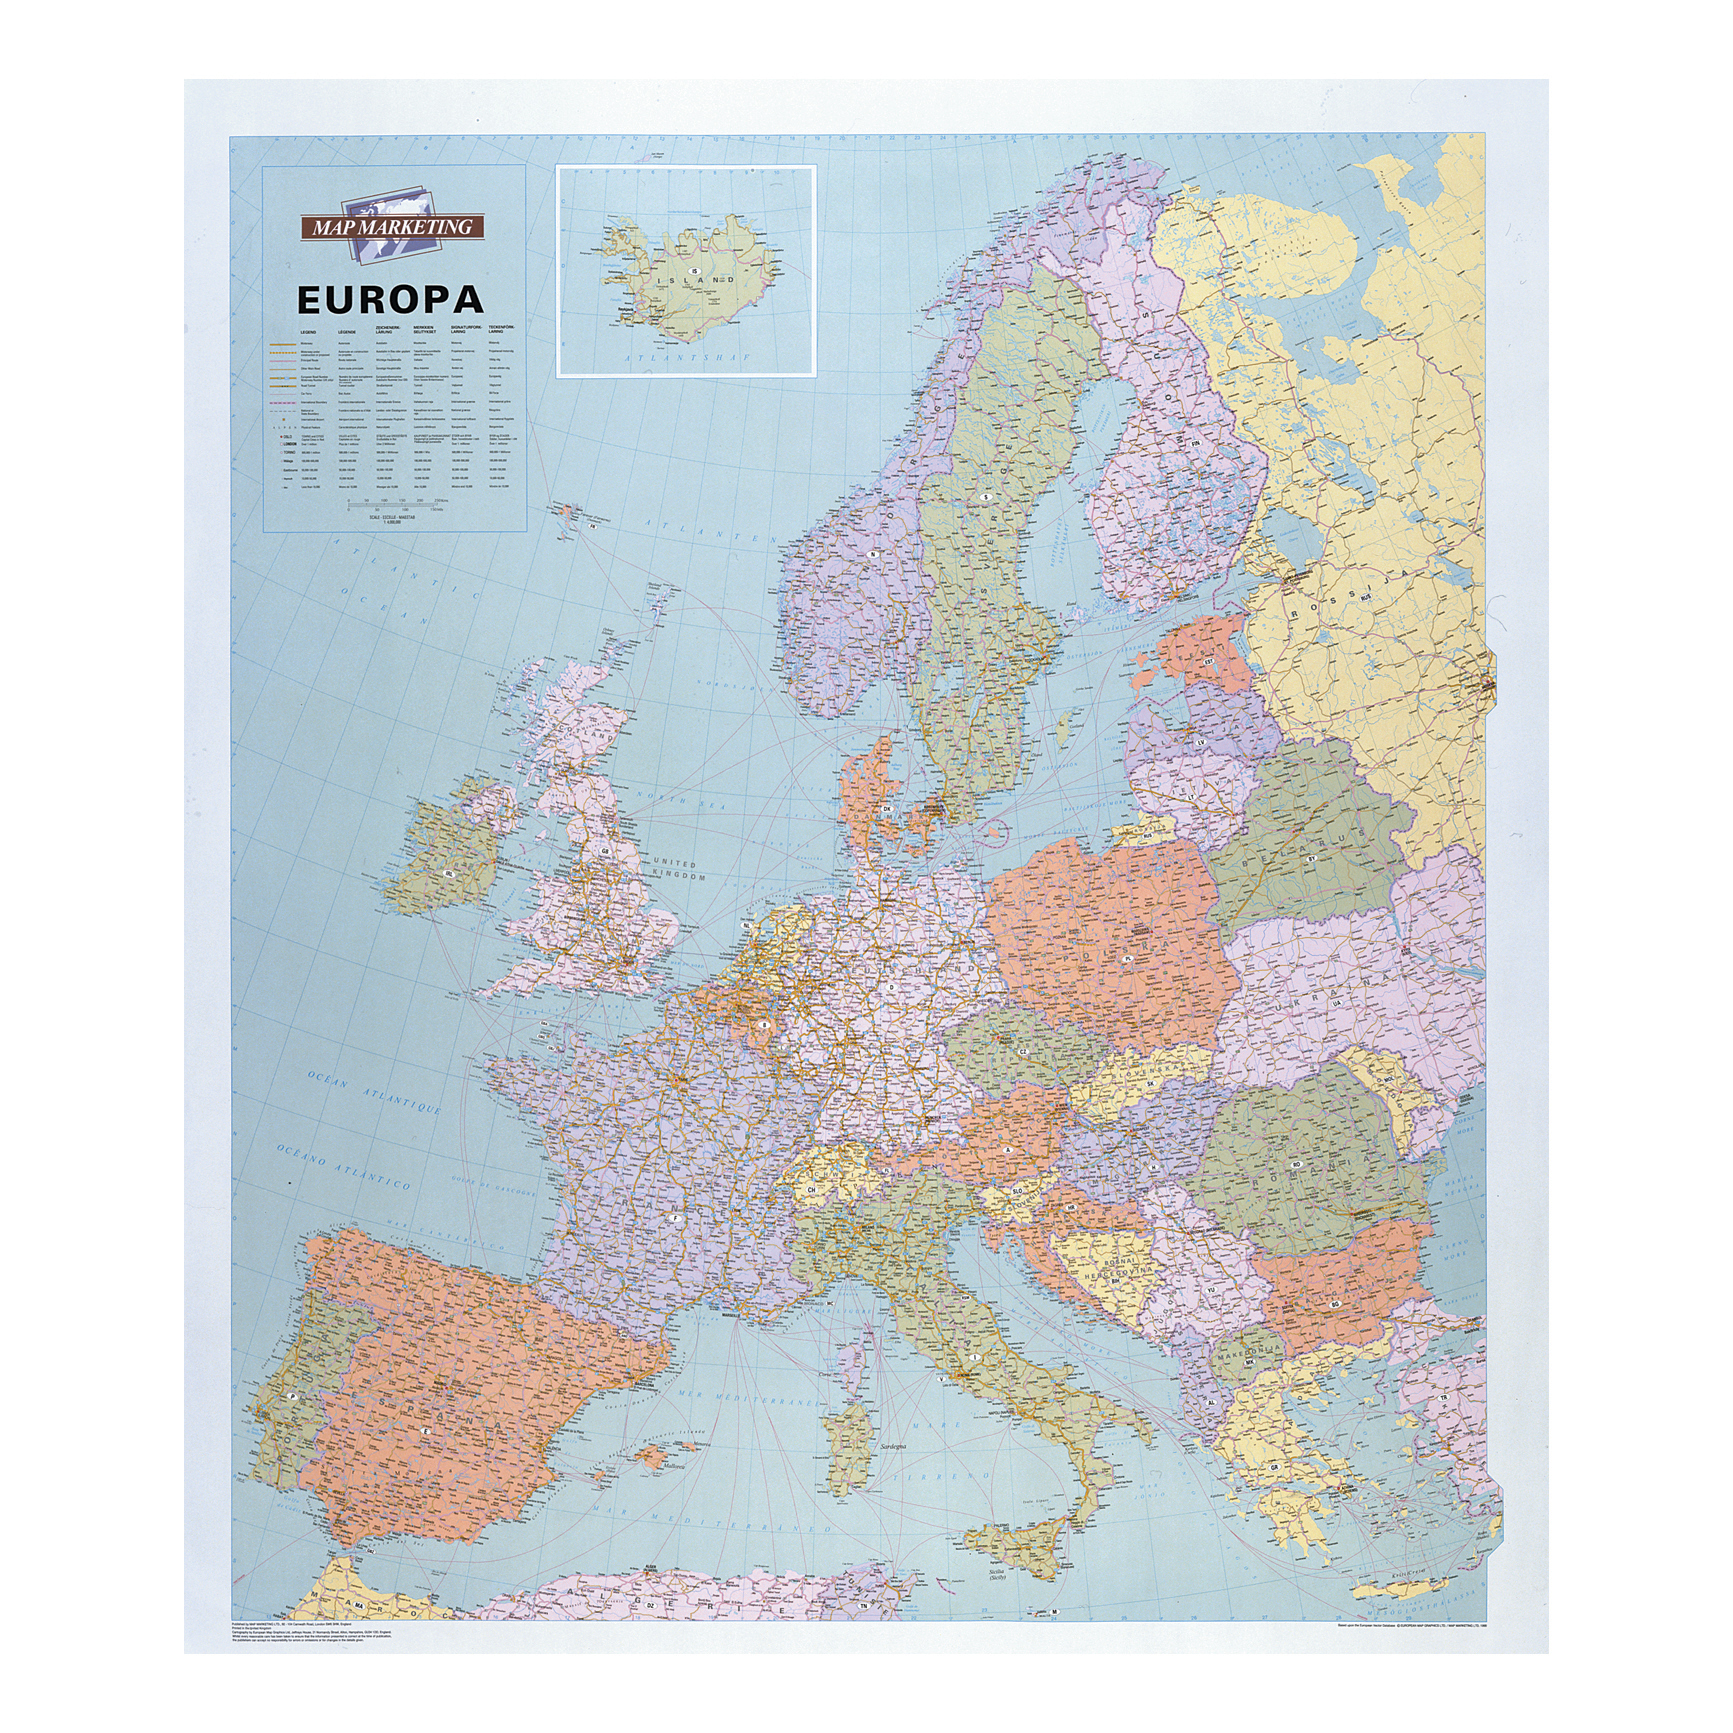 Map Marketing Europa Political Map Unframed 64 Miles to 1 inch Scale 990x1010mm Ref WEURP